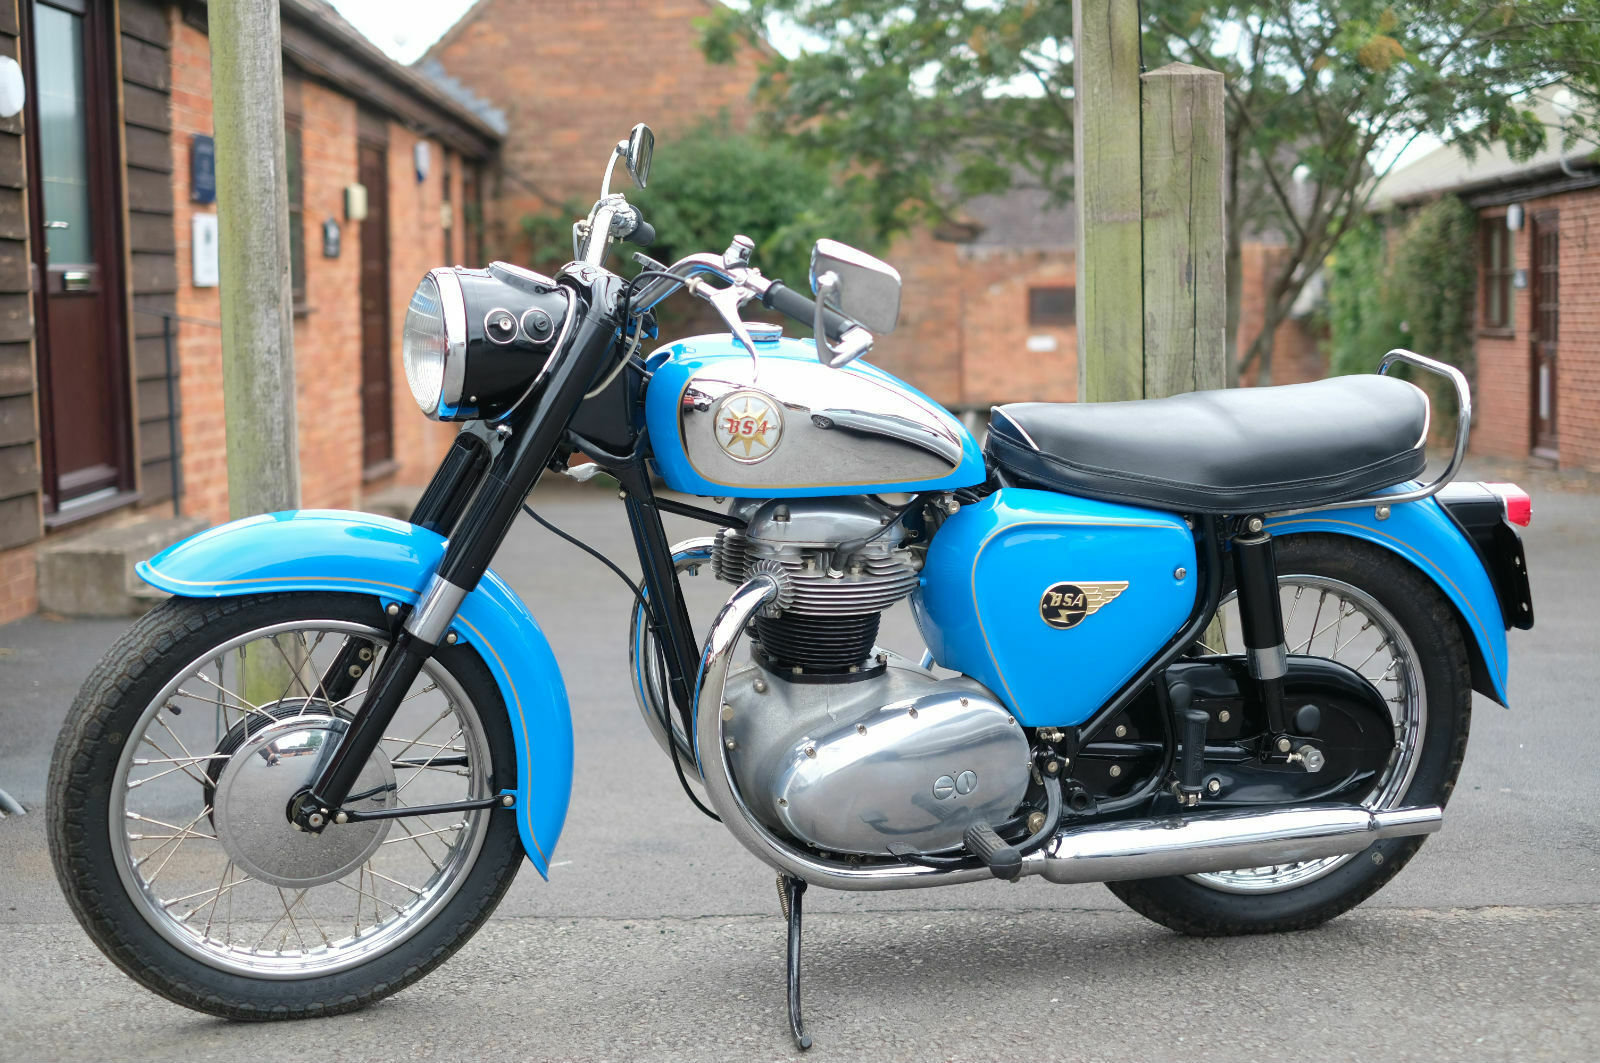 BSA A65 A 65 Star 1962 Stunning, just stunning For Sale (picture 2 of 6)